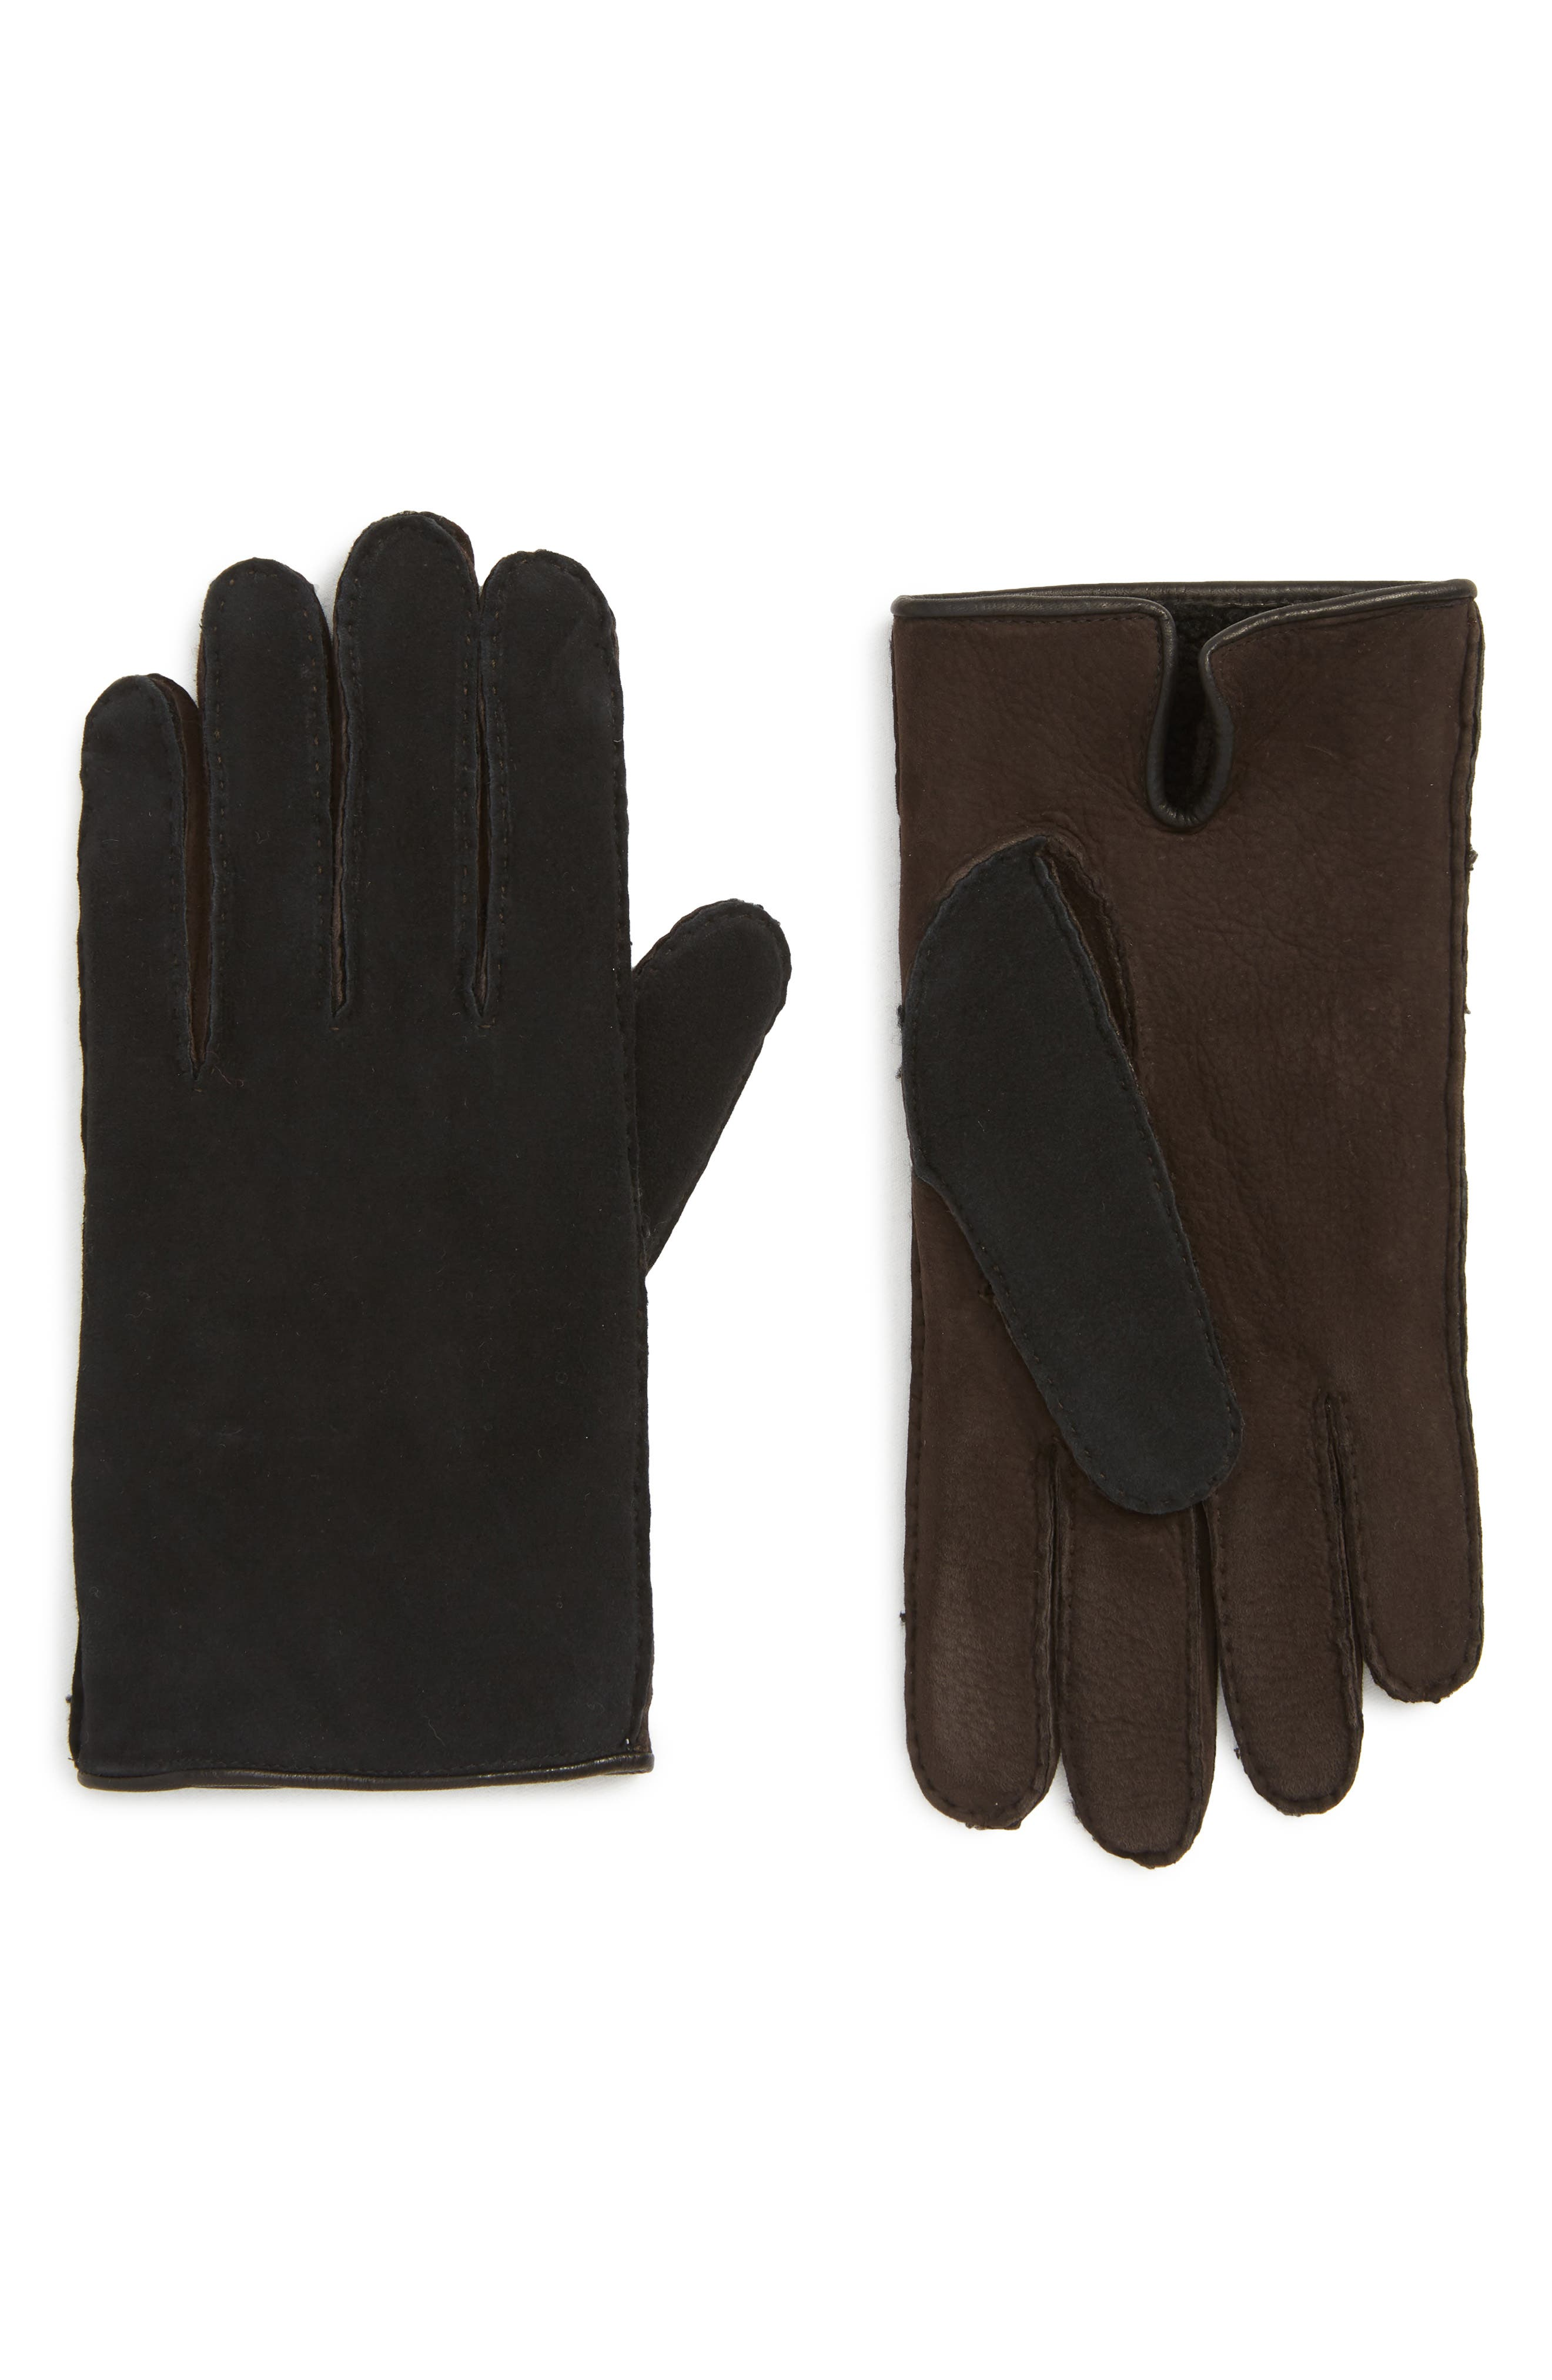 Hickey Freeman Leather Gloves - Black